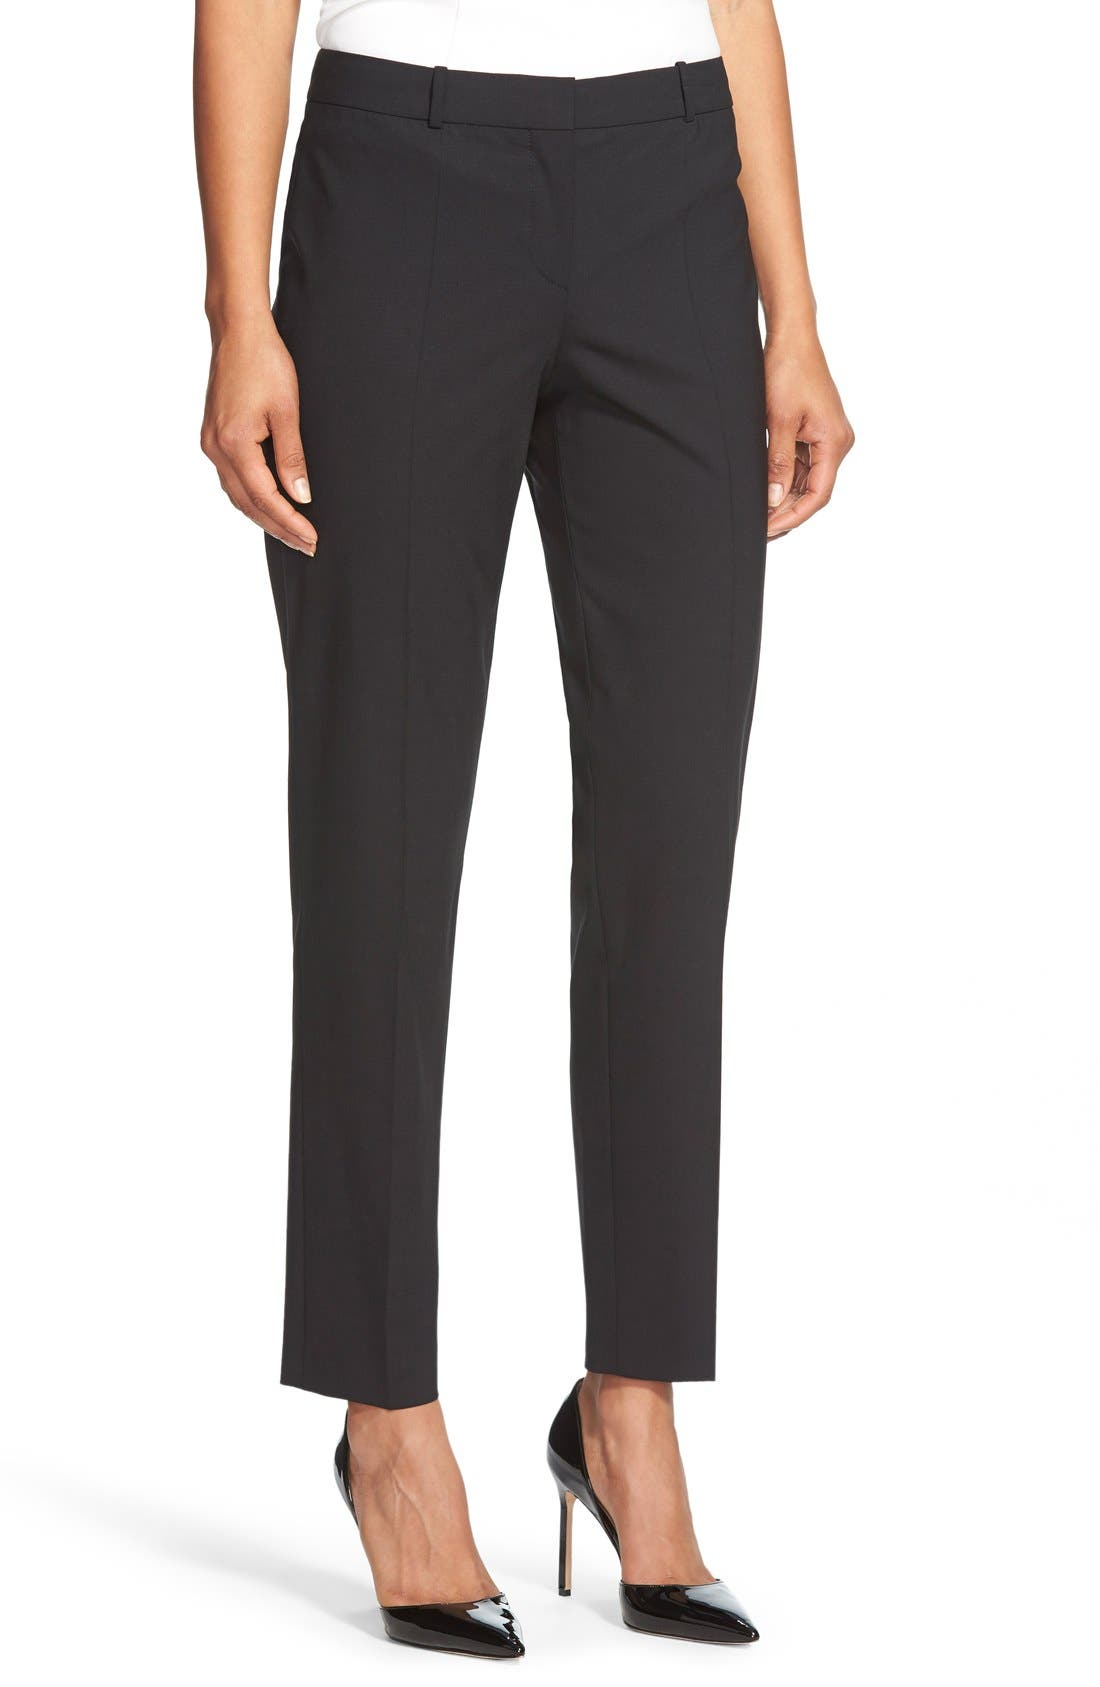 Tiluna Tropical Stretch Wool Ankle Trousers,                             Main thumbnail 1, color,                             BLACK